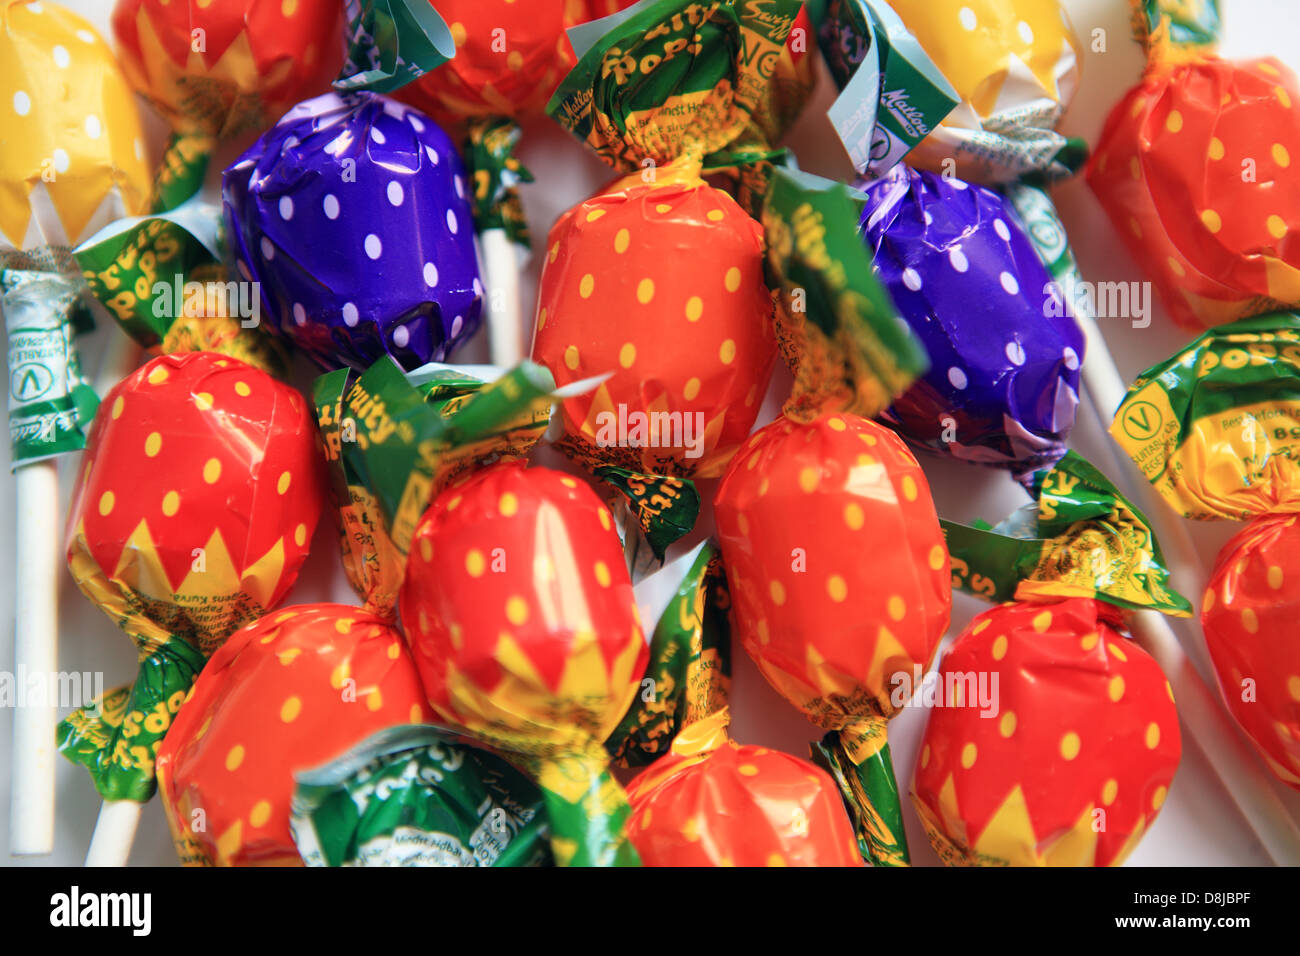 Lollipops with coloured wrappers - Stock Image